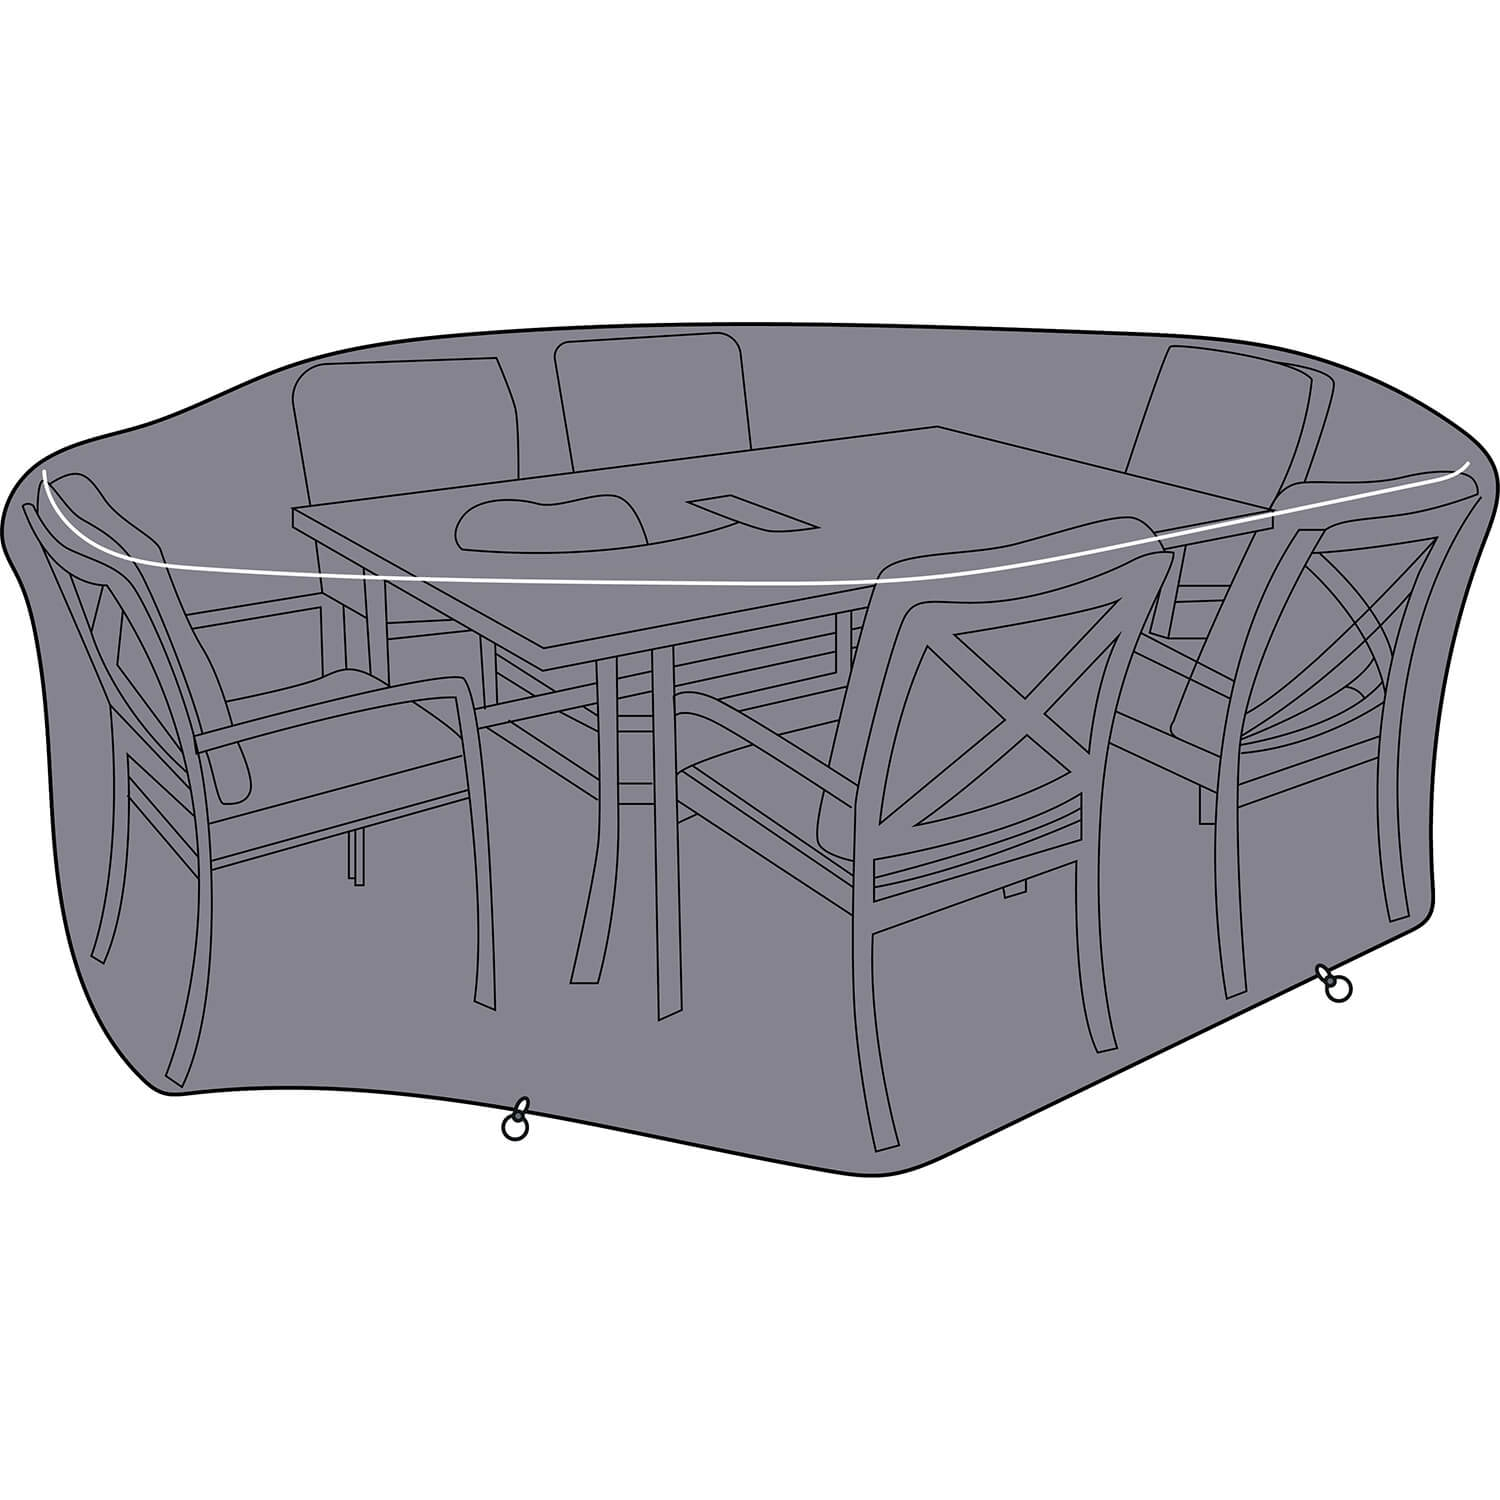 Image of Jamie Oliver 6 Seater Feastable Outdoor Cover